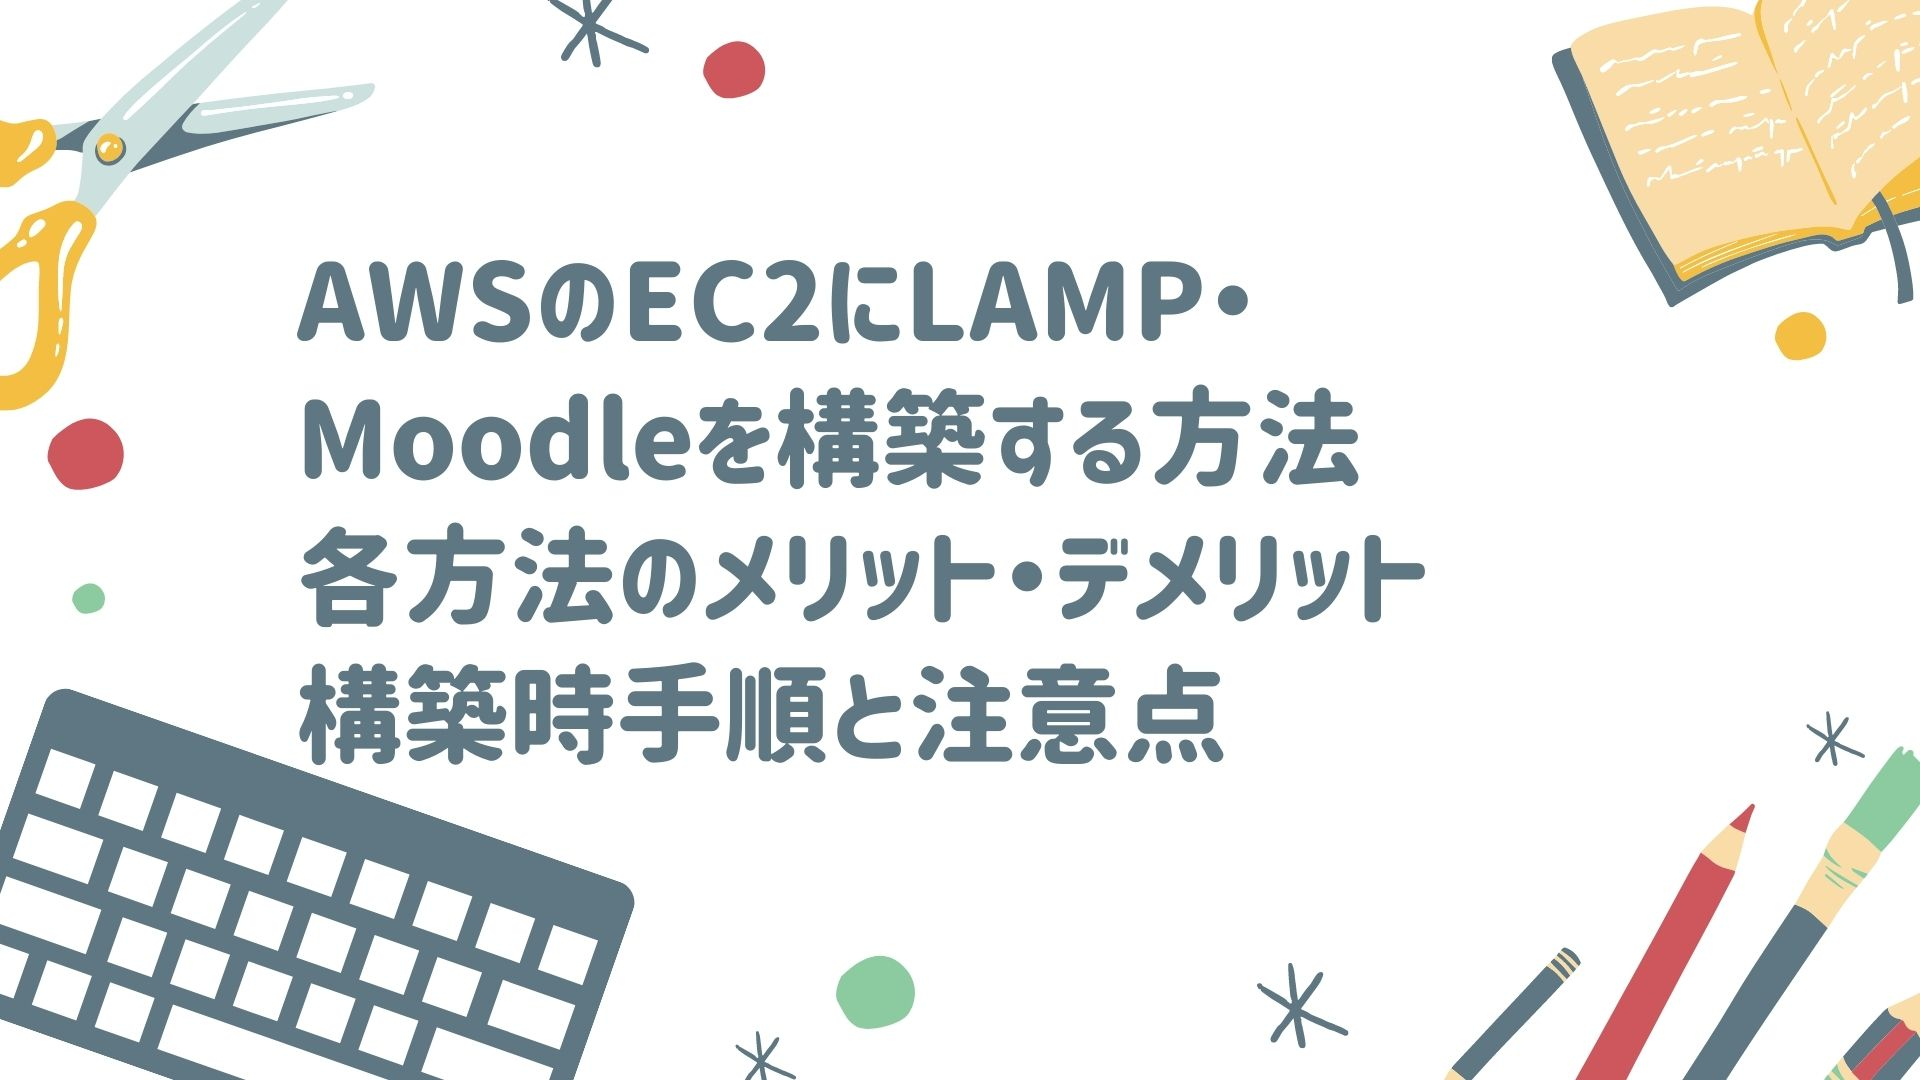 LAMPのMoodle構築メリットデメリット